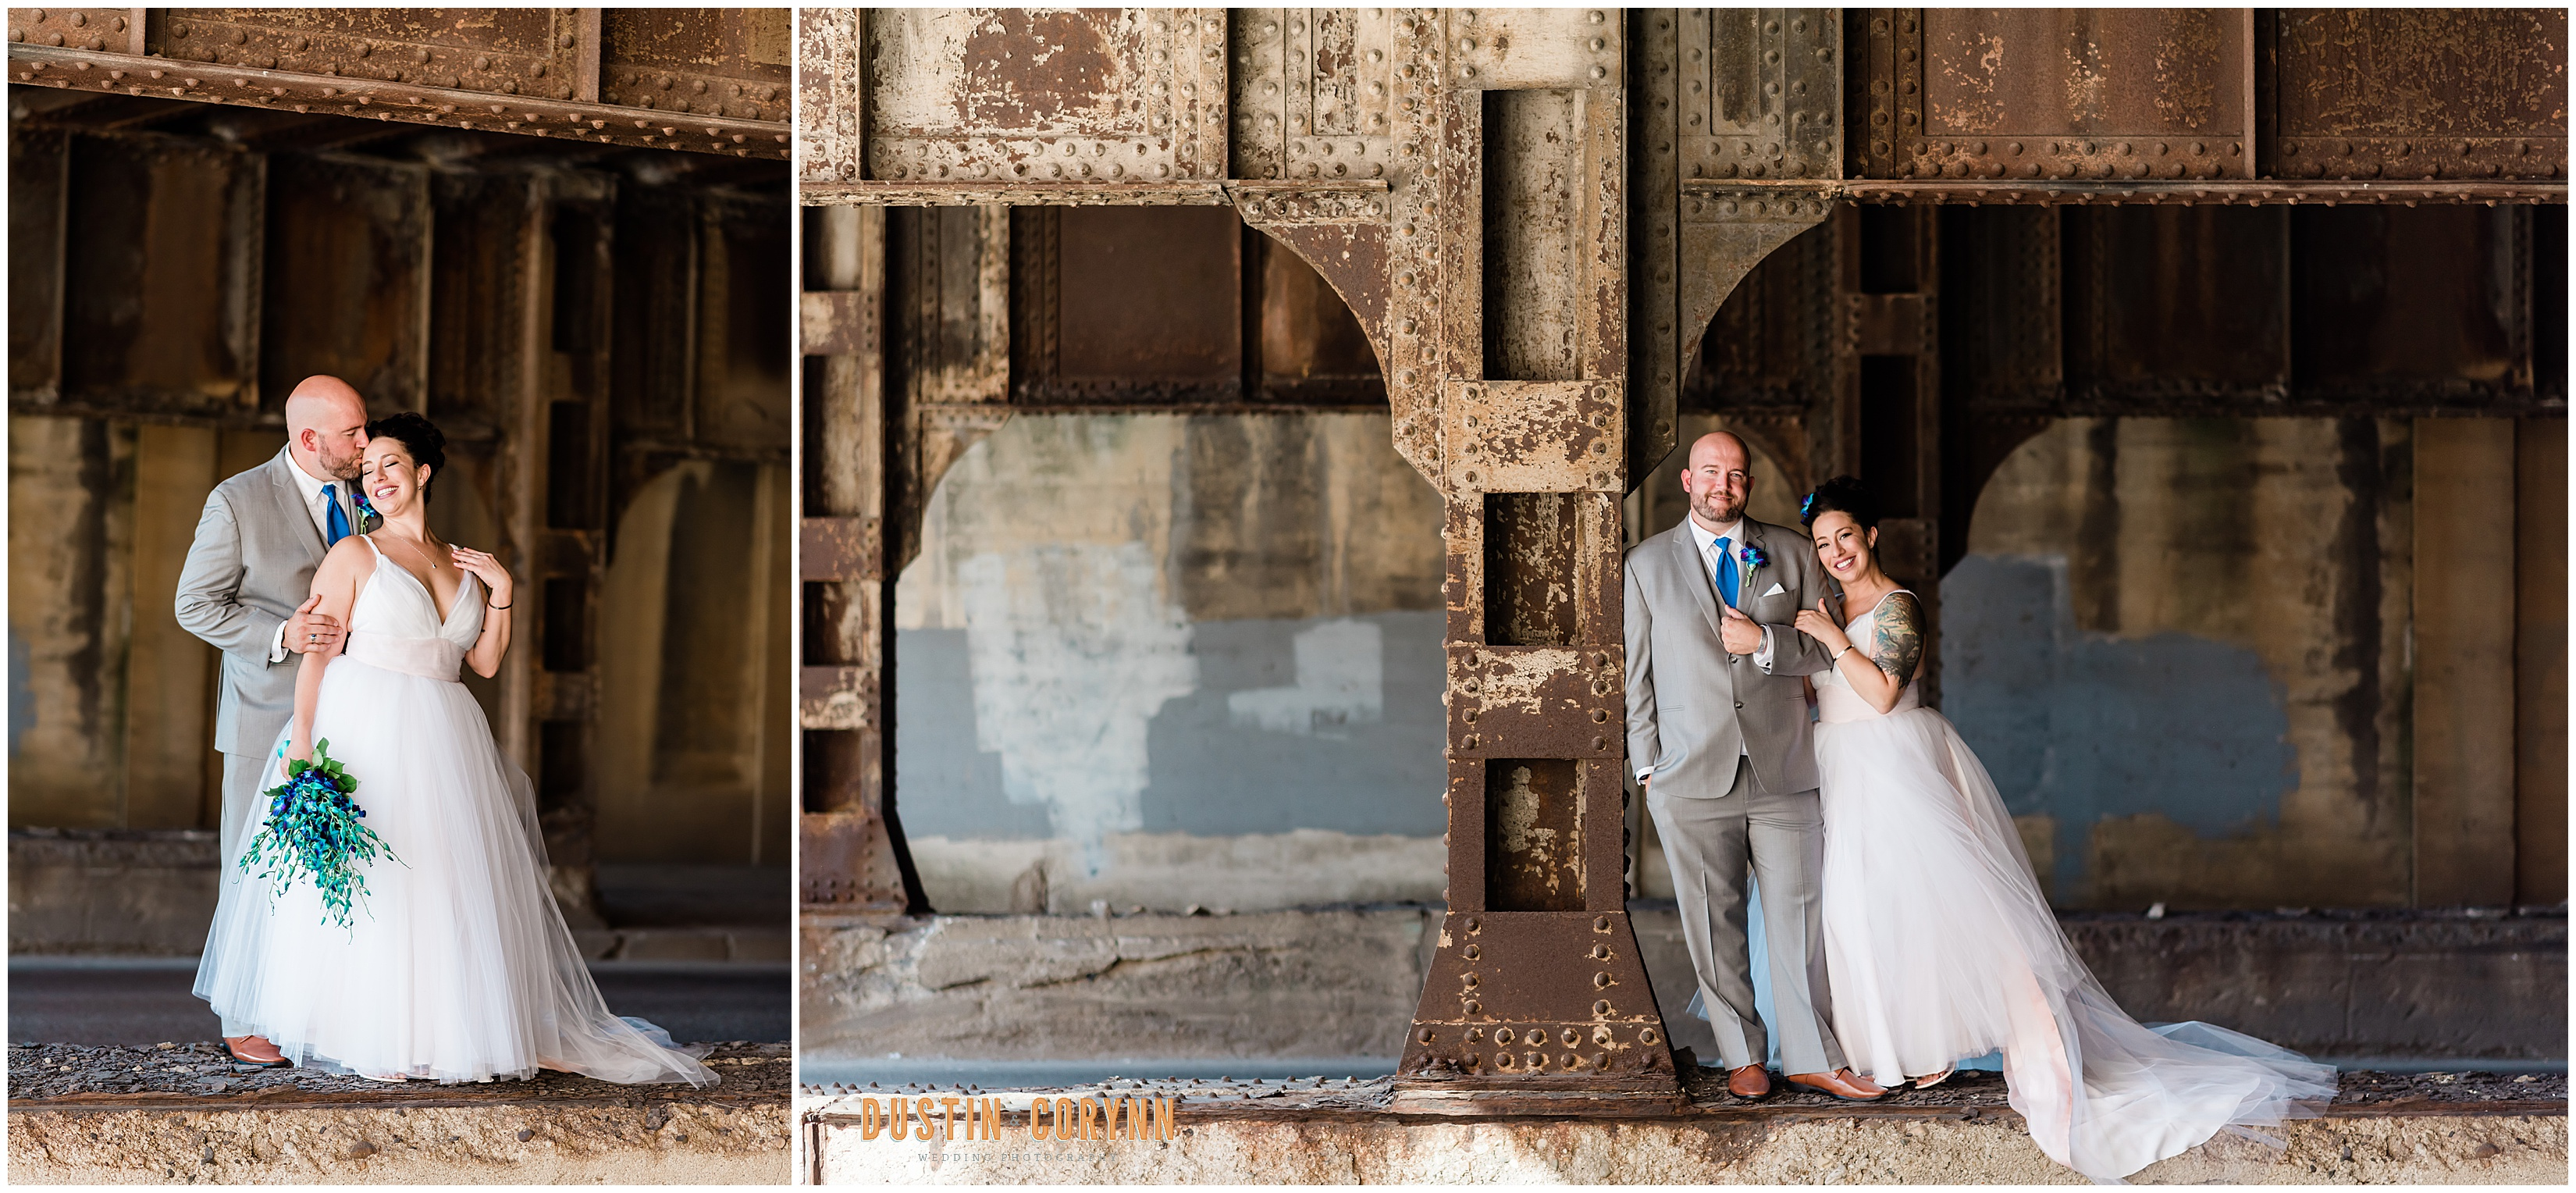 Bride and Groom portraits at Mavris Arts Center Wedding